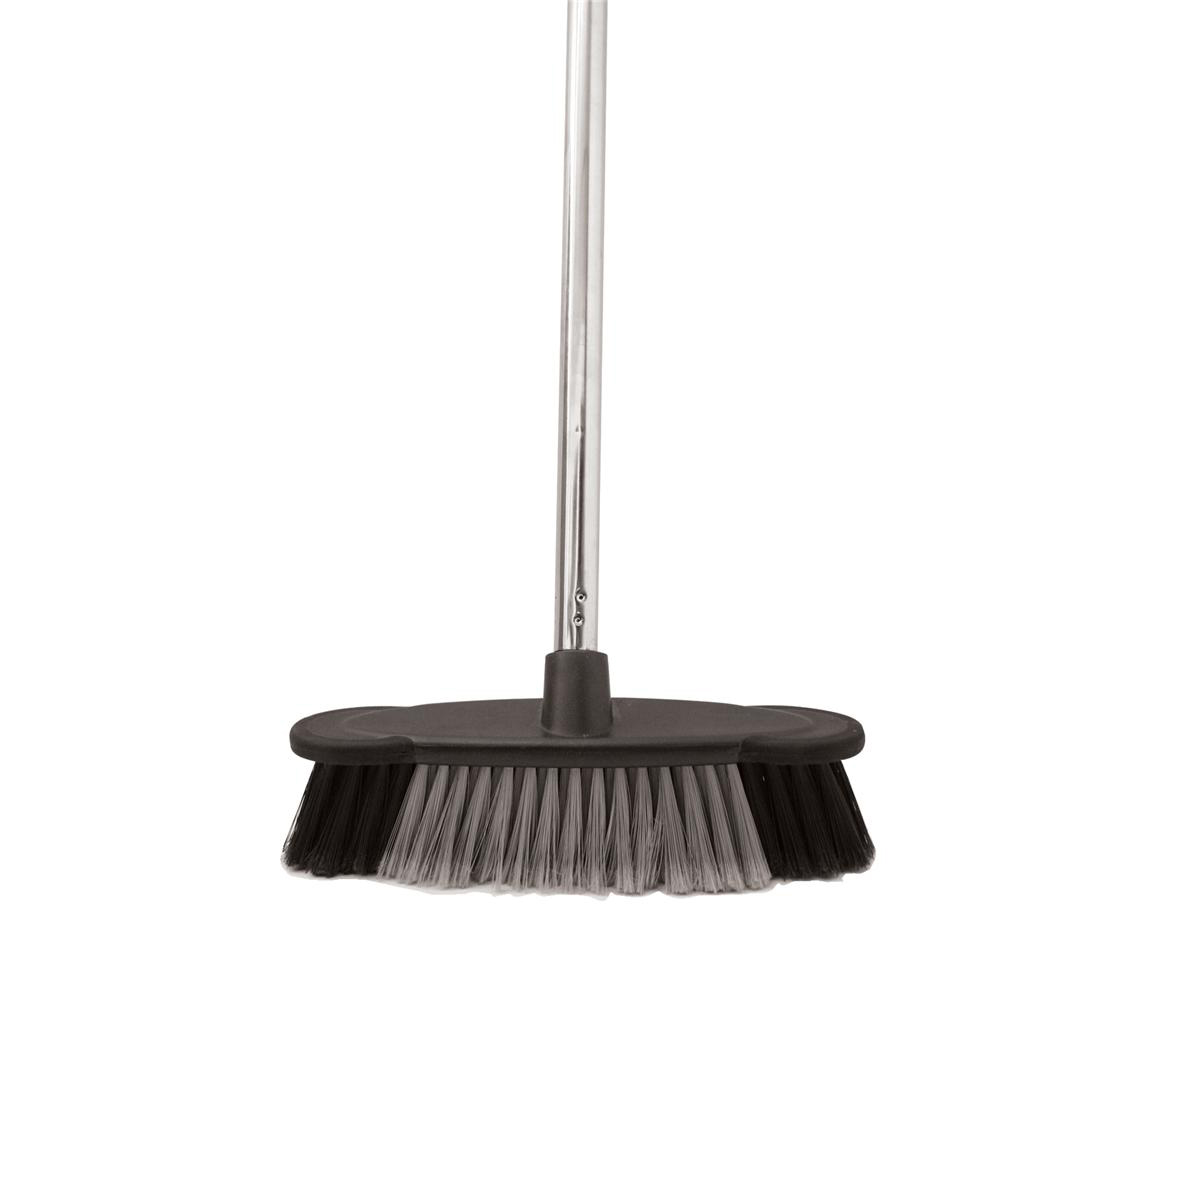 Mops & Buckets Bentley Soft Bristle Broom Indoor Chrome Handle length: 1.2m Ref HL2801/G/F4